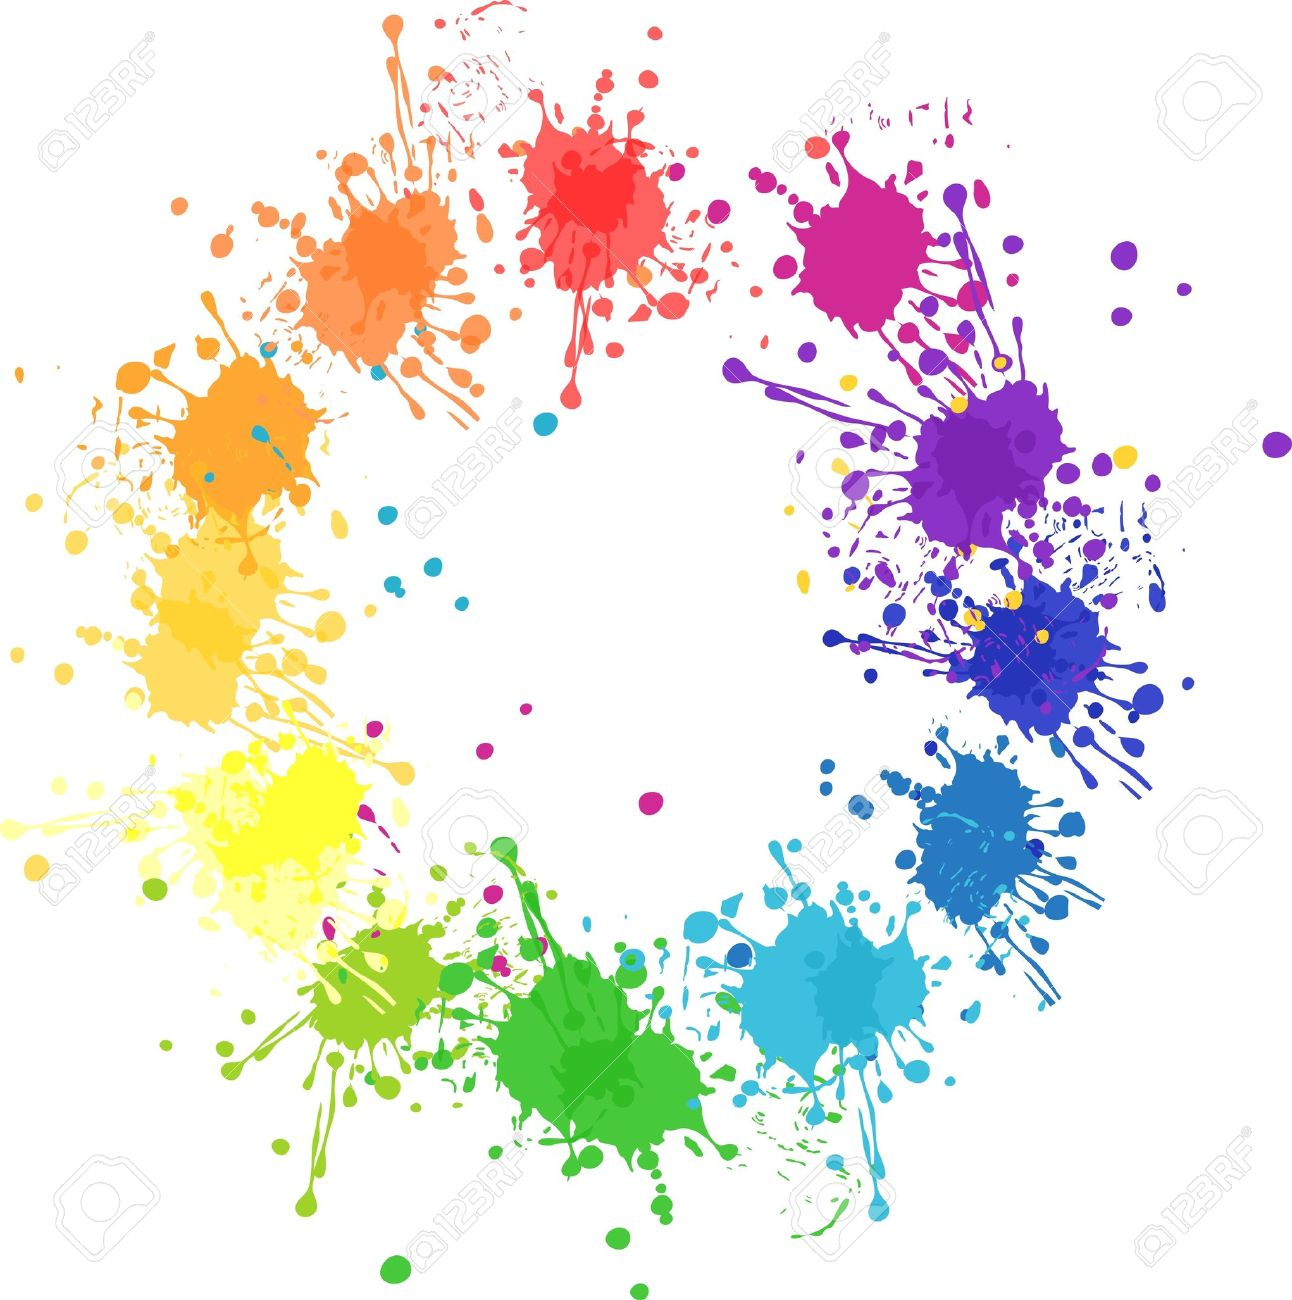 Color Wheel With Flat Colors Without Transparency Stock Vector